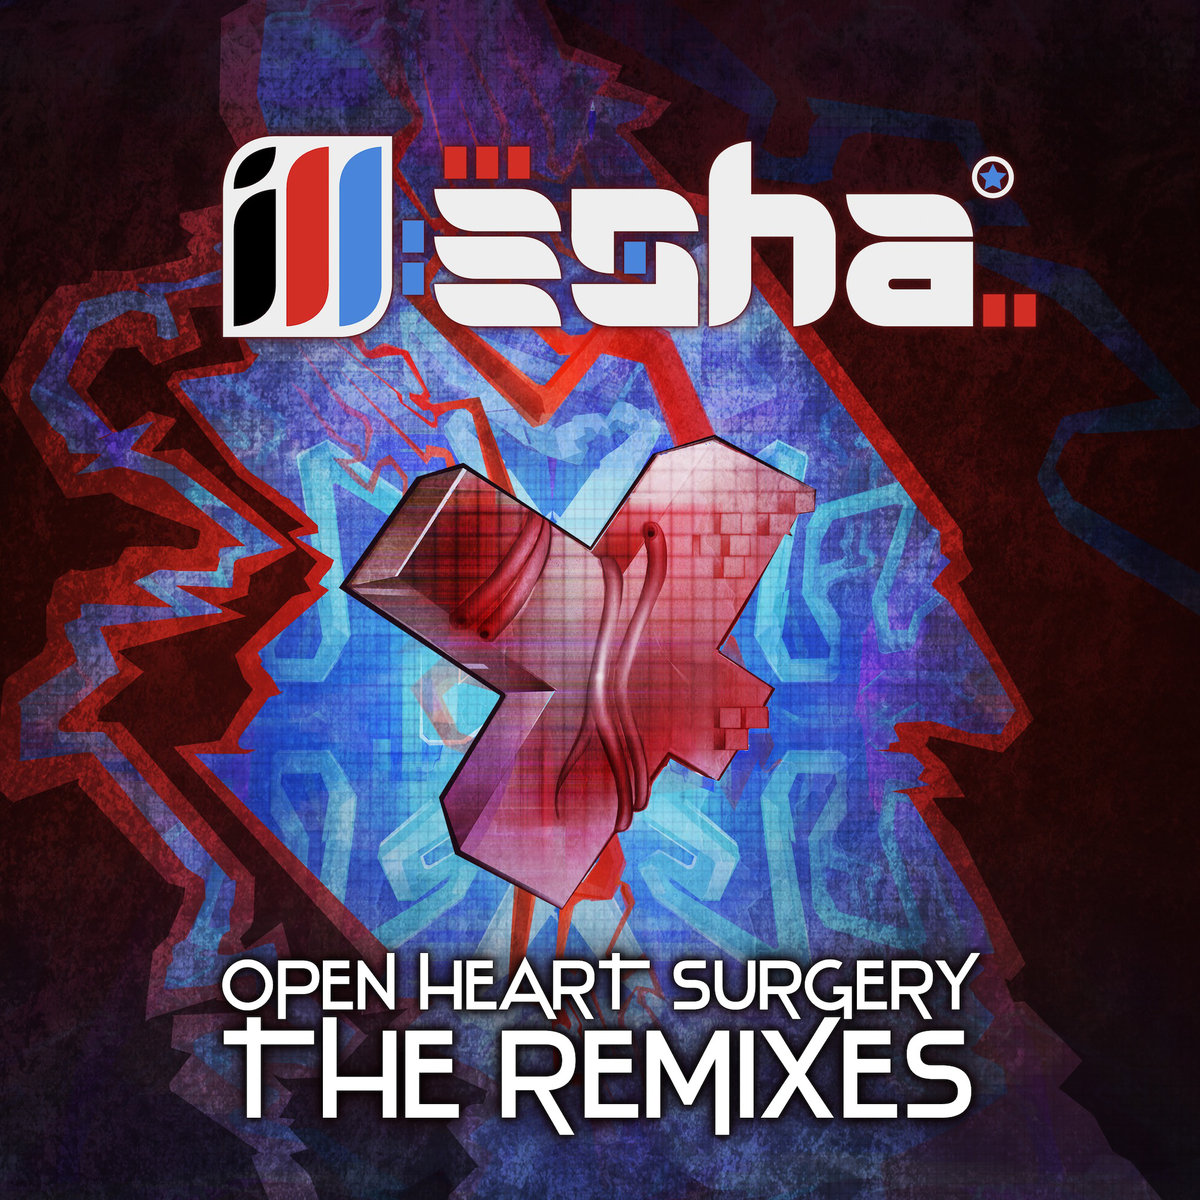 ill-esha - Open Heart Surgery (ChrisB. Remix) @ 'Open Heart Surgery: The Remixes' album (Austin)